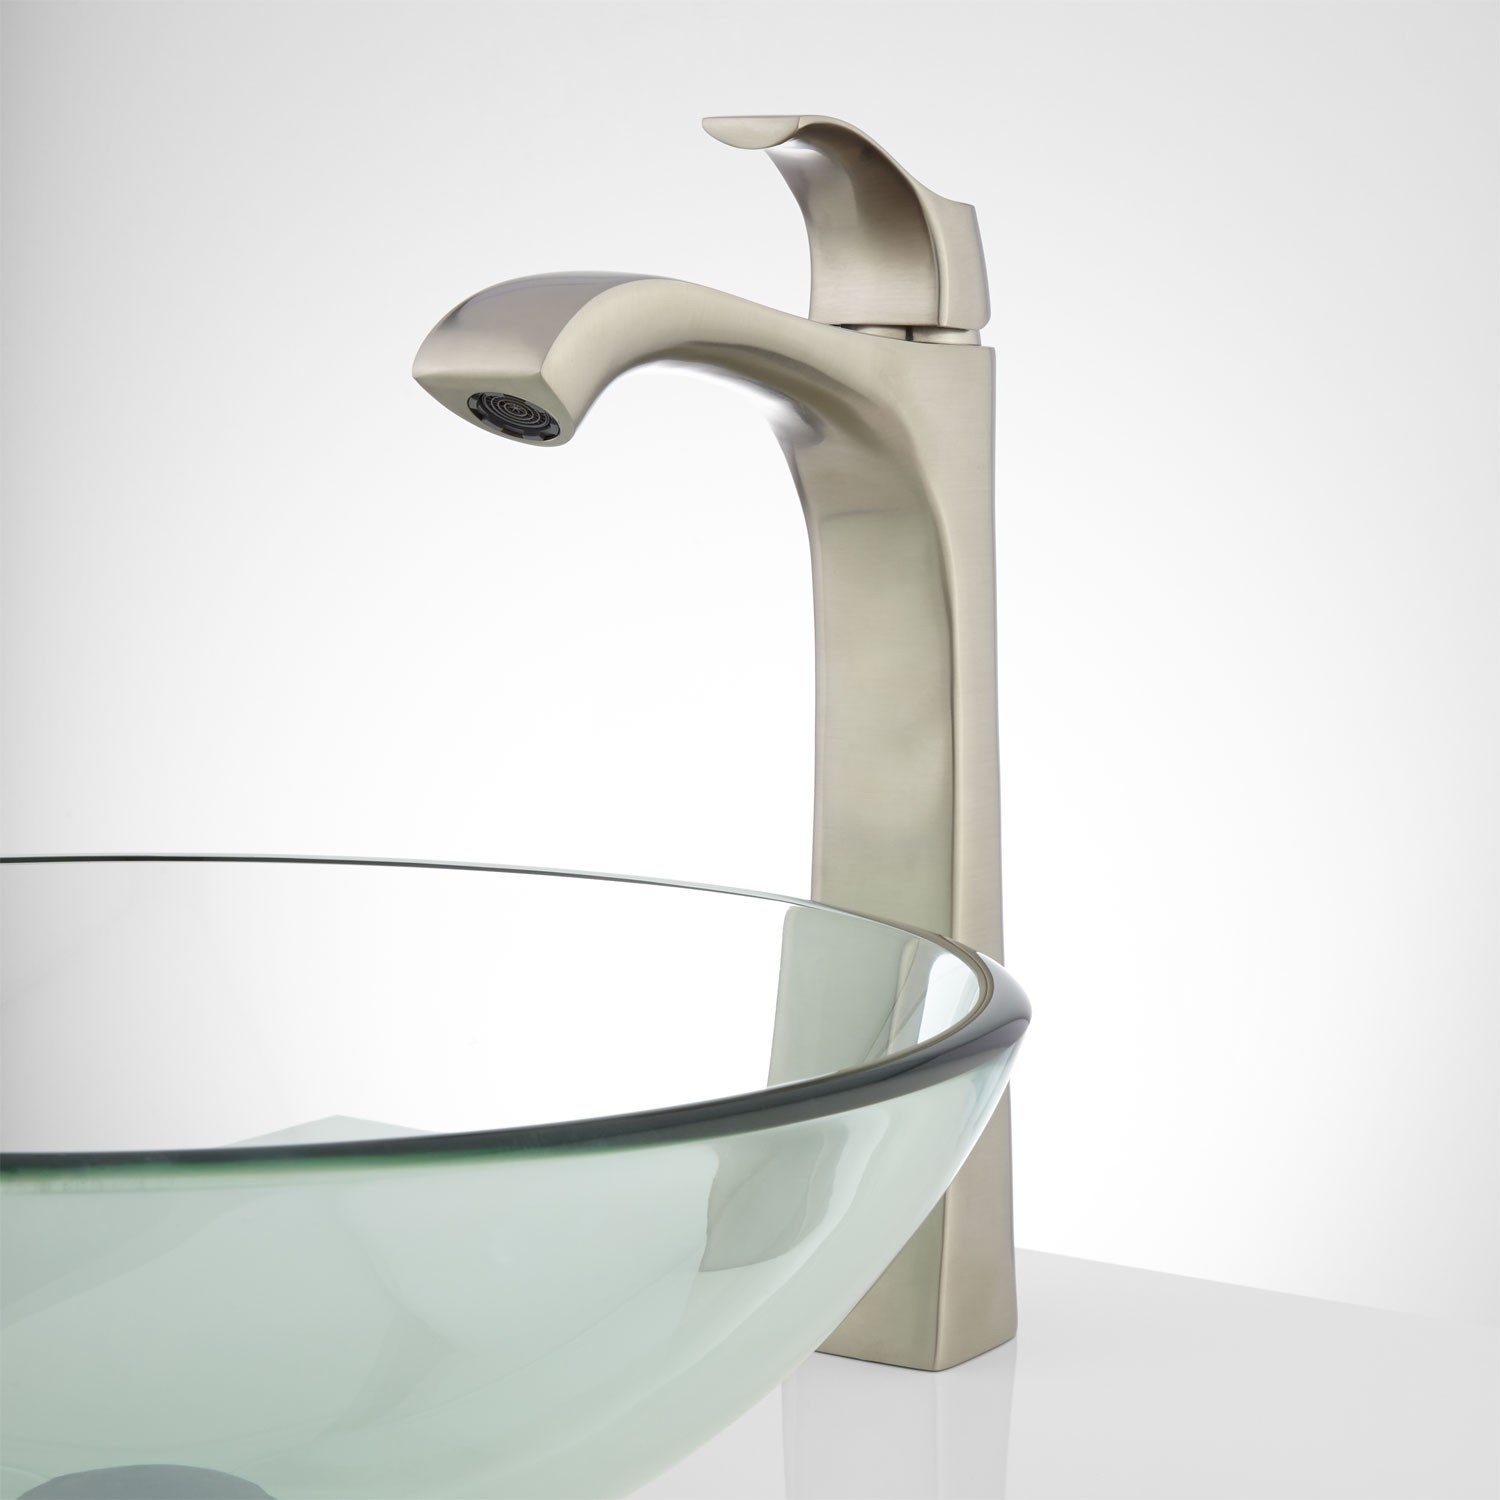 clayton single hole vessel faucet single hole faucets bathroom intended for sizing 1500 x 1500